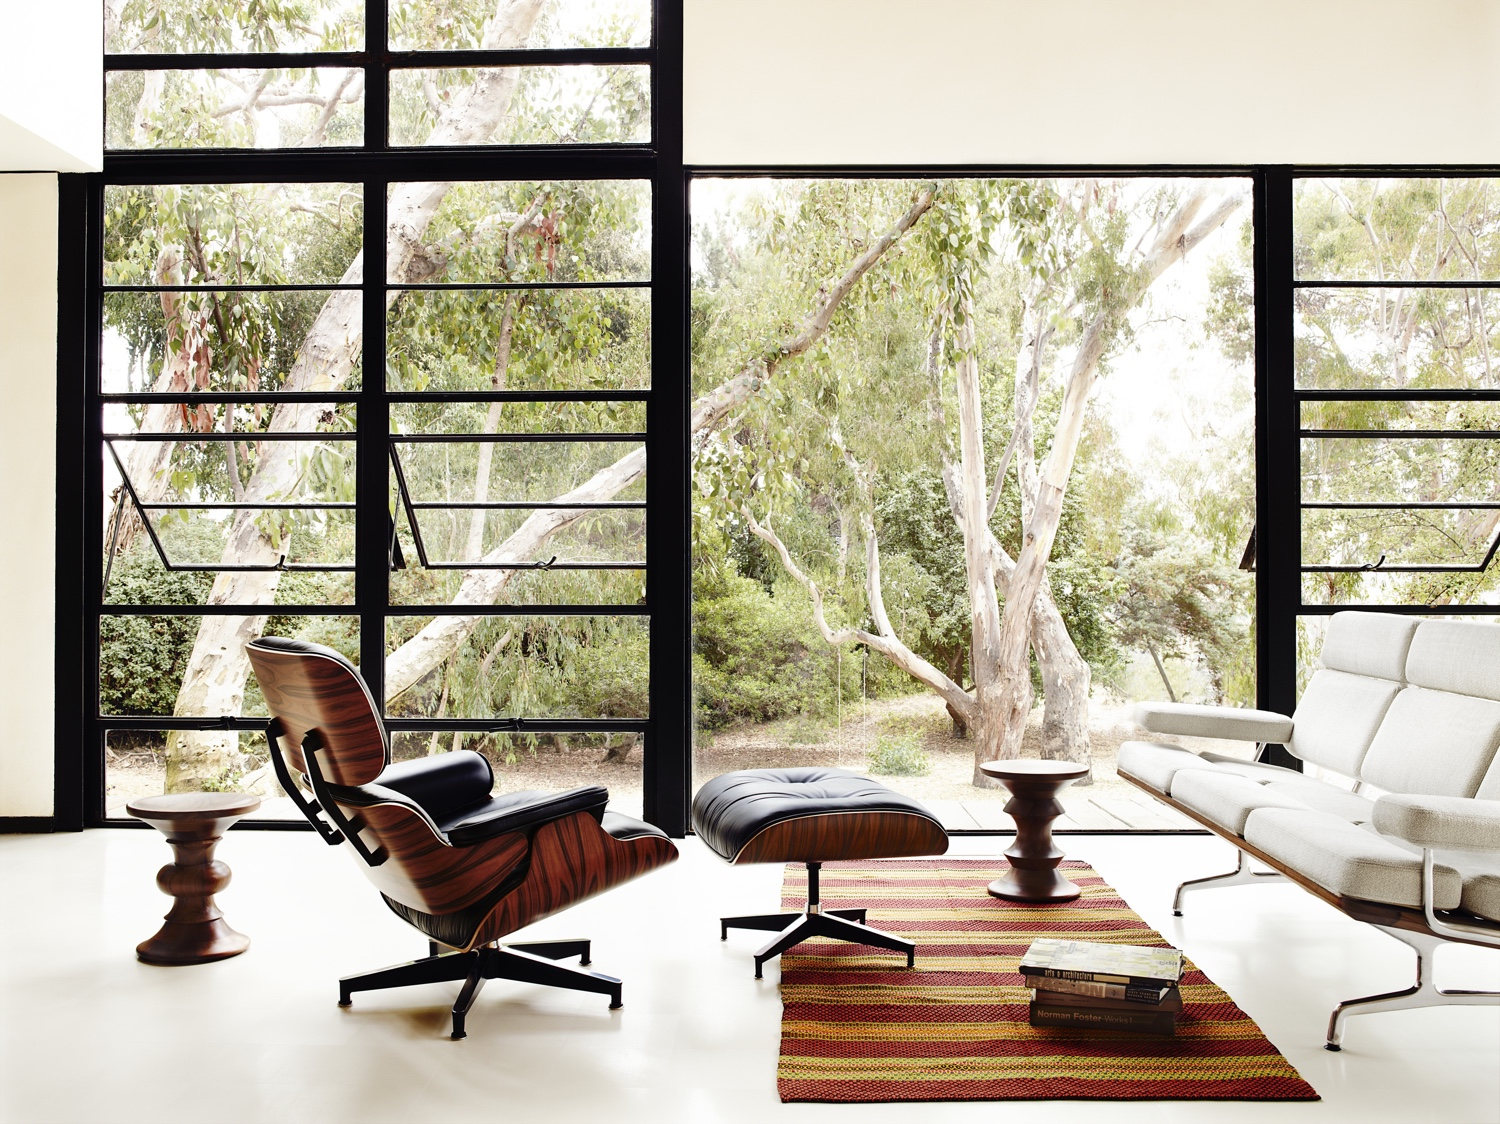 Eames lounge chair living room -  The Eames Lounge Chair And Ottoman In The Eames House Alongside The Classic Eames Sofa